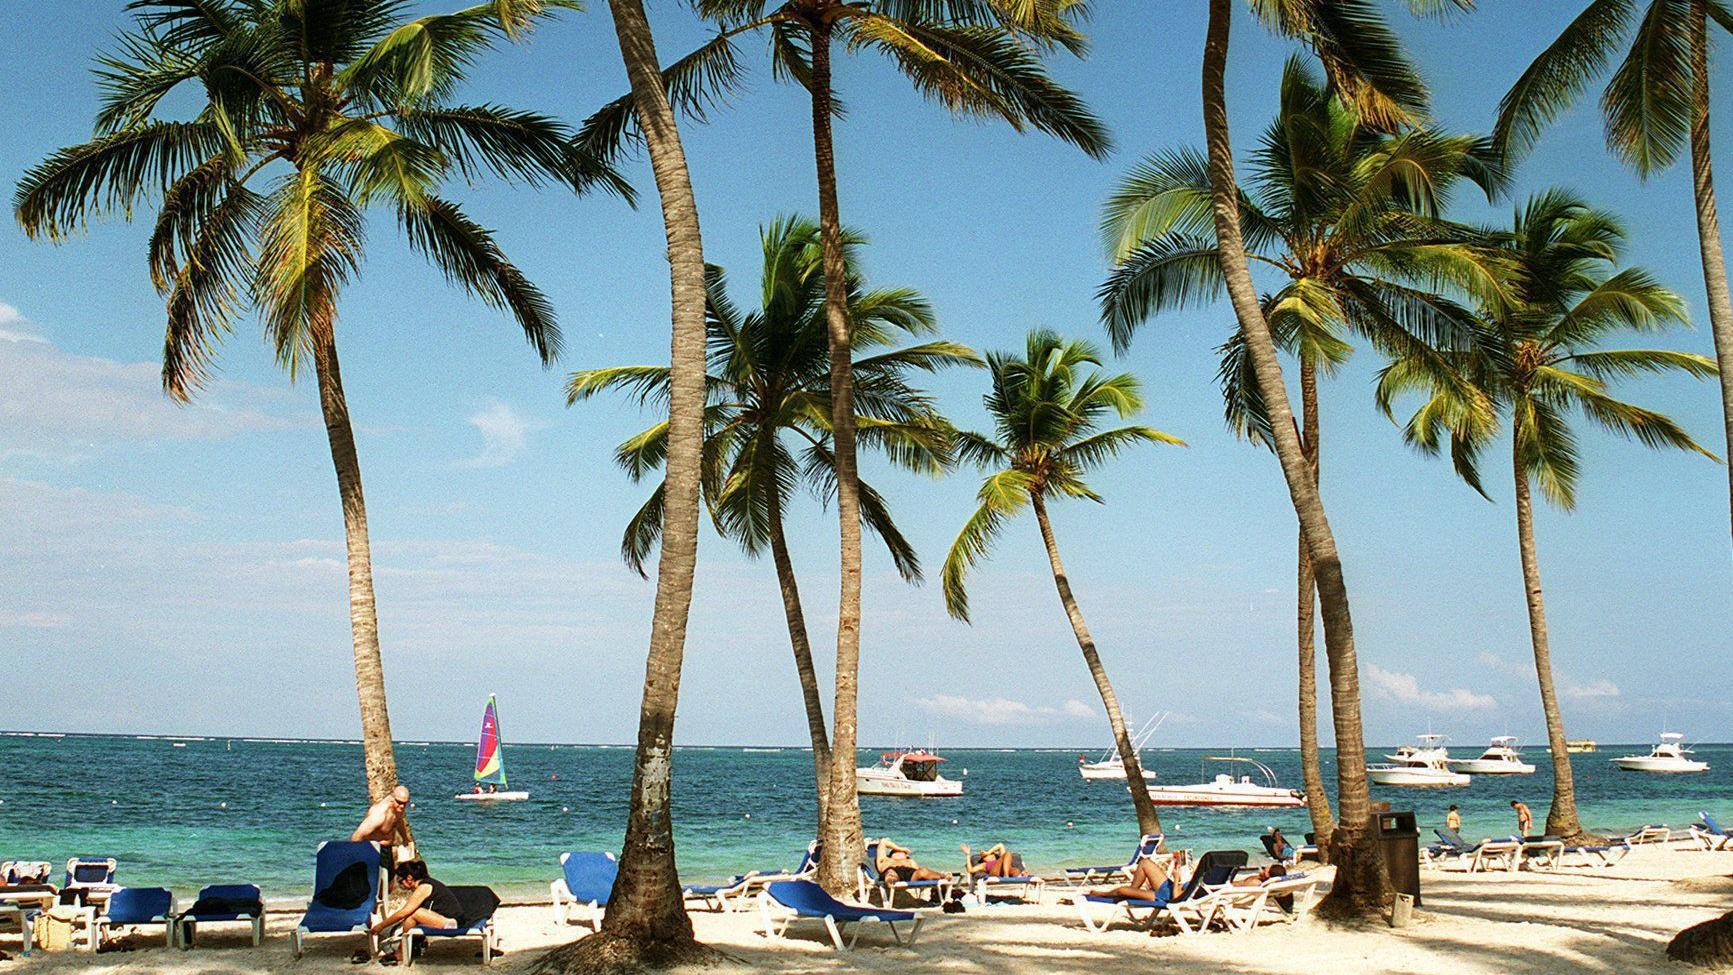 AAA's top 20 places for summer fun in the sun